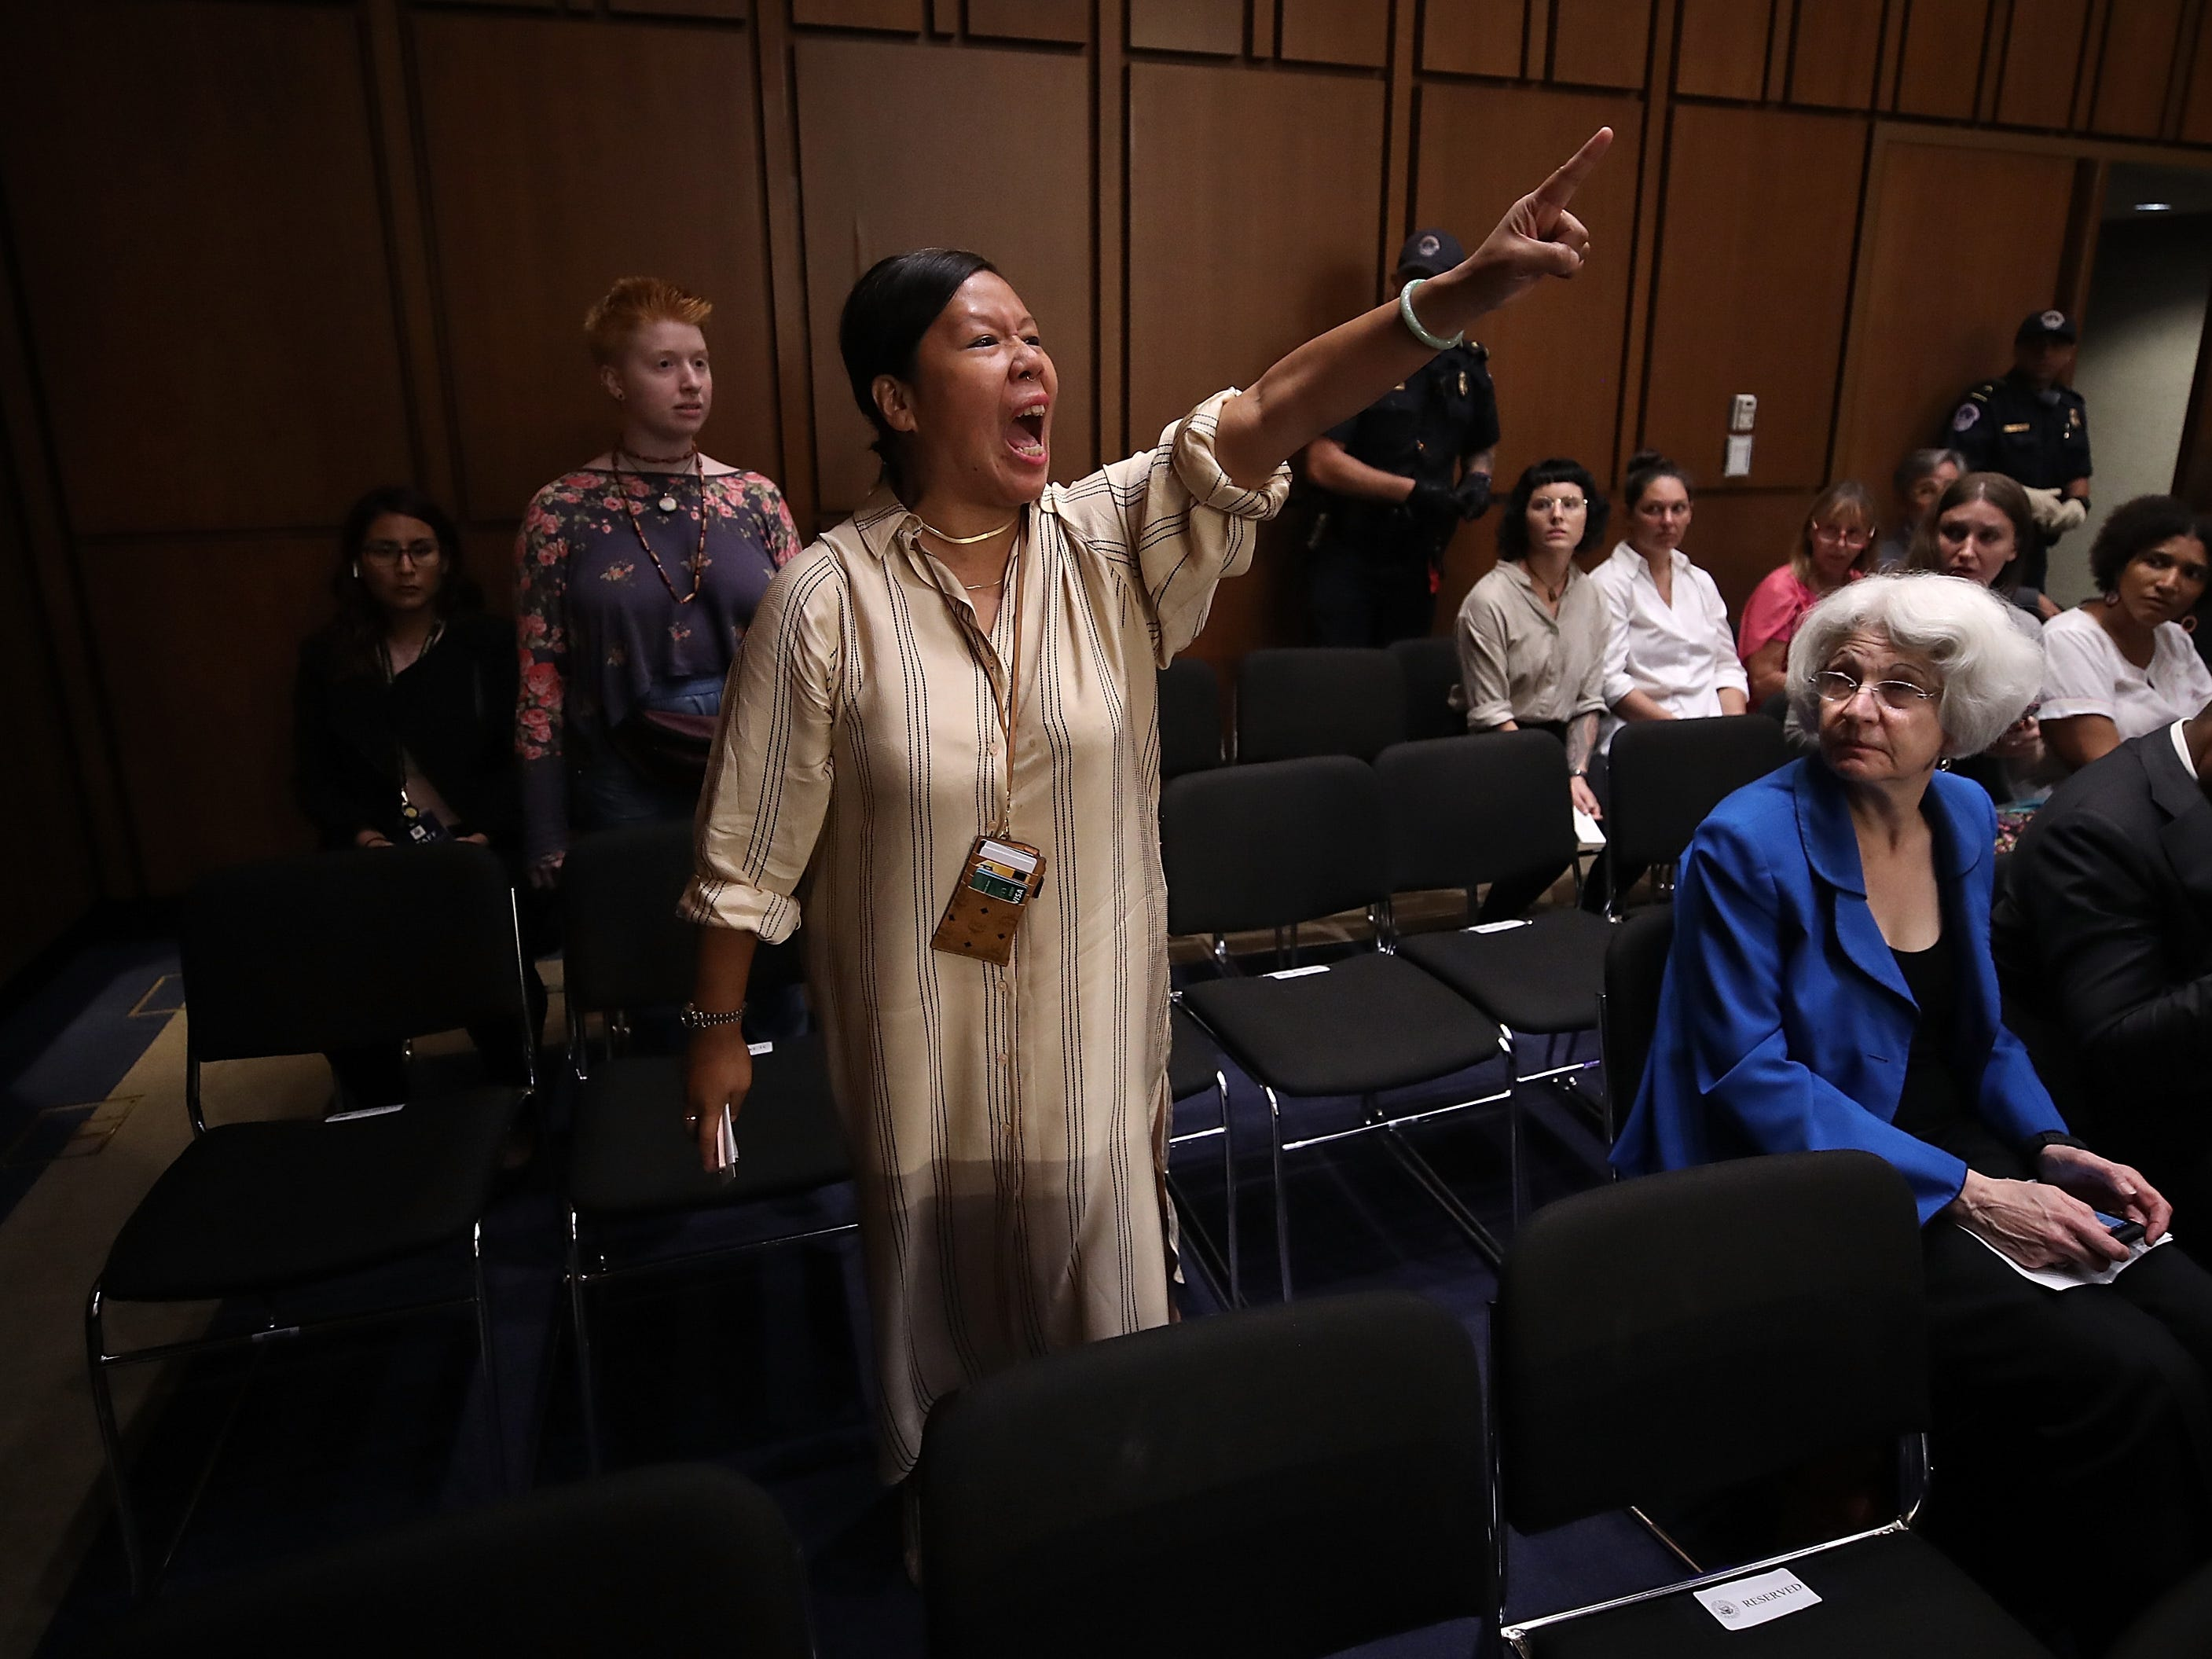 WASHINGTON, DC - SEPTEMBER 04:  Protesters disrupt the start of the Supreme Court nominee Judge Brett Kavanaugh's confirmation hearing before the Senate Judiciary Committee in the Hart Senate Office Building on Capitol Hill September 4, 2018 in Washington, DC. Kavanaugh was nominated by President Donald Trump to fill the vacancy on the court left by retiring Associate Justice Anthony Kennedy.  (Photo by Mark Wilson/Getty Images) ORG XMIT: 775208795 ORIG FILE ID: 1026647630